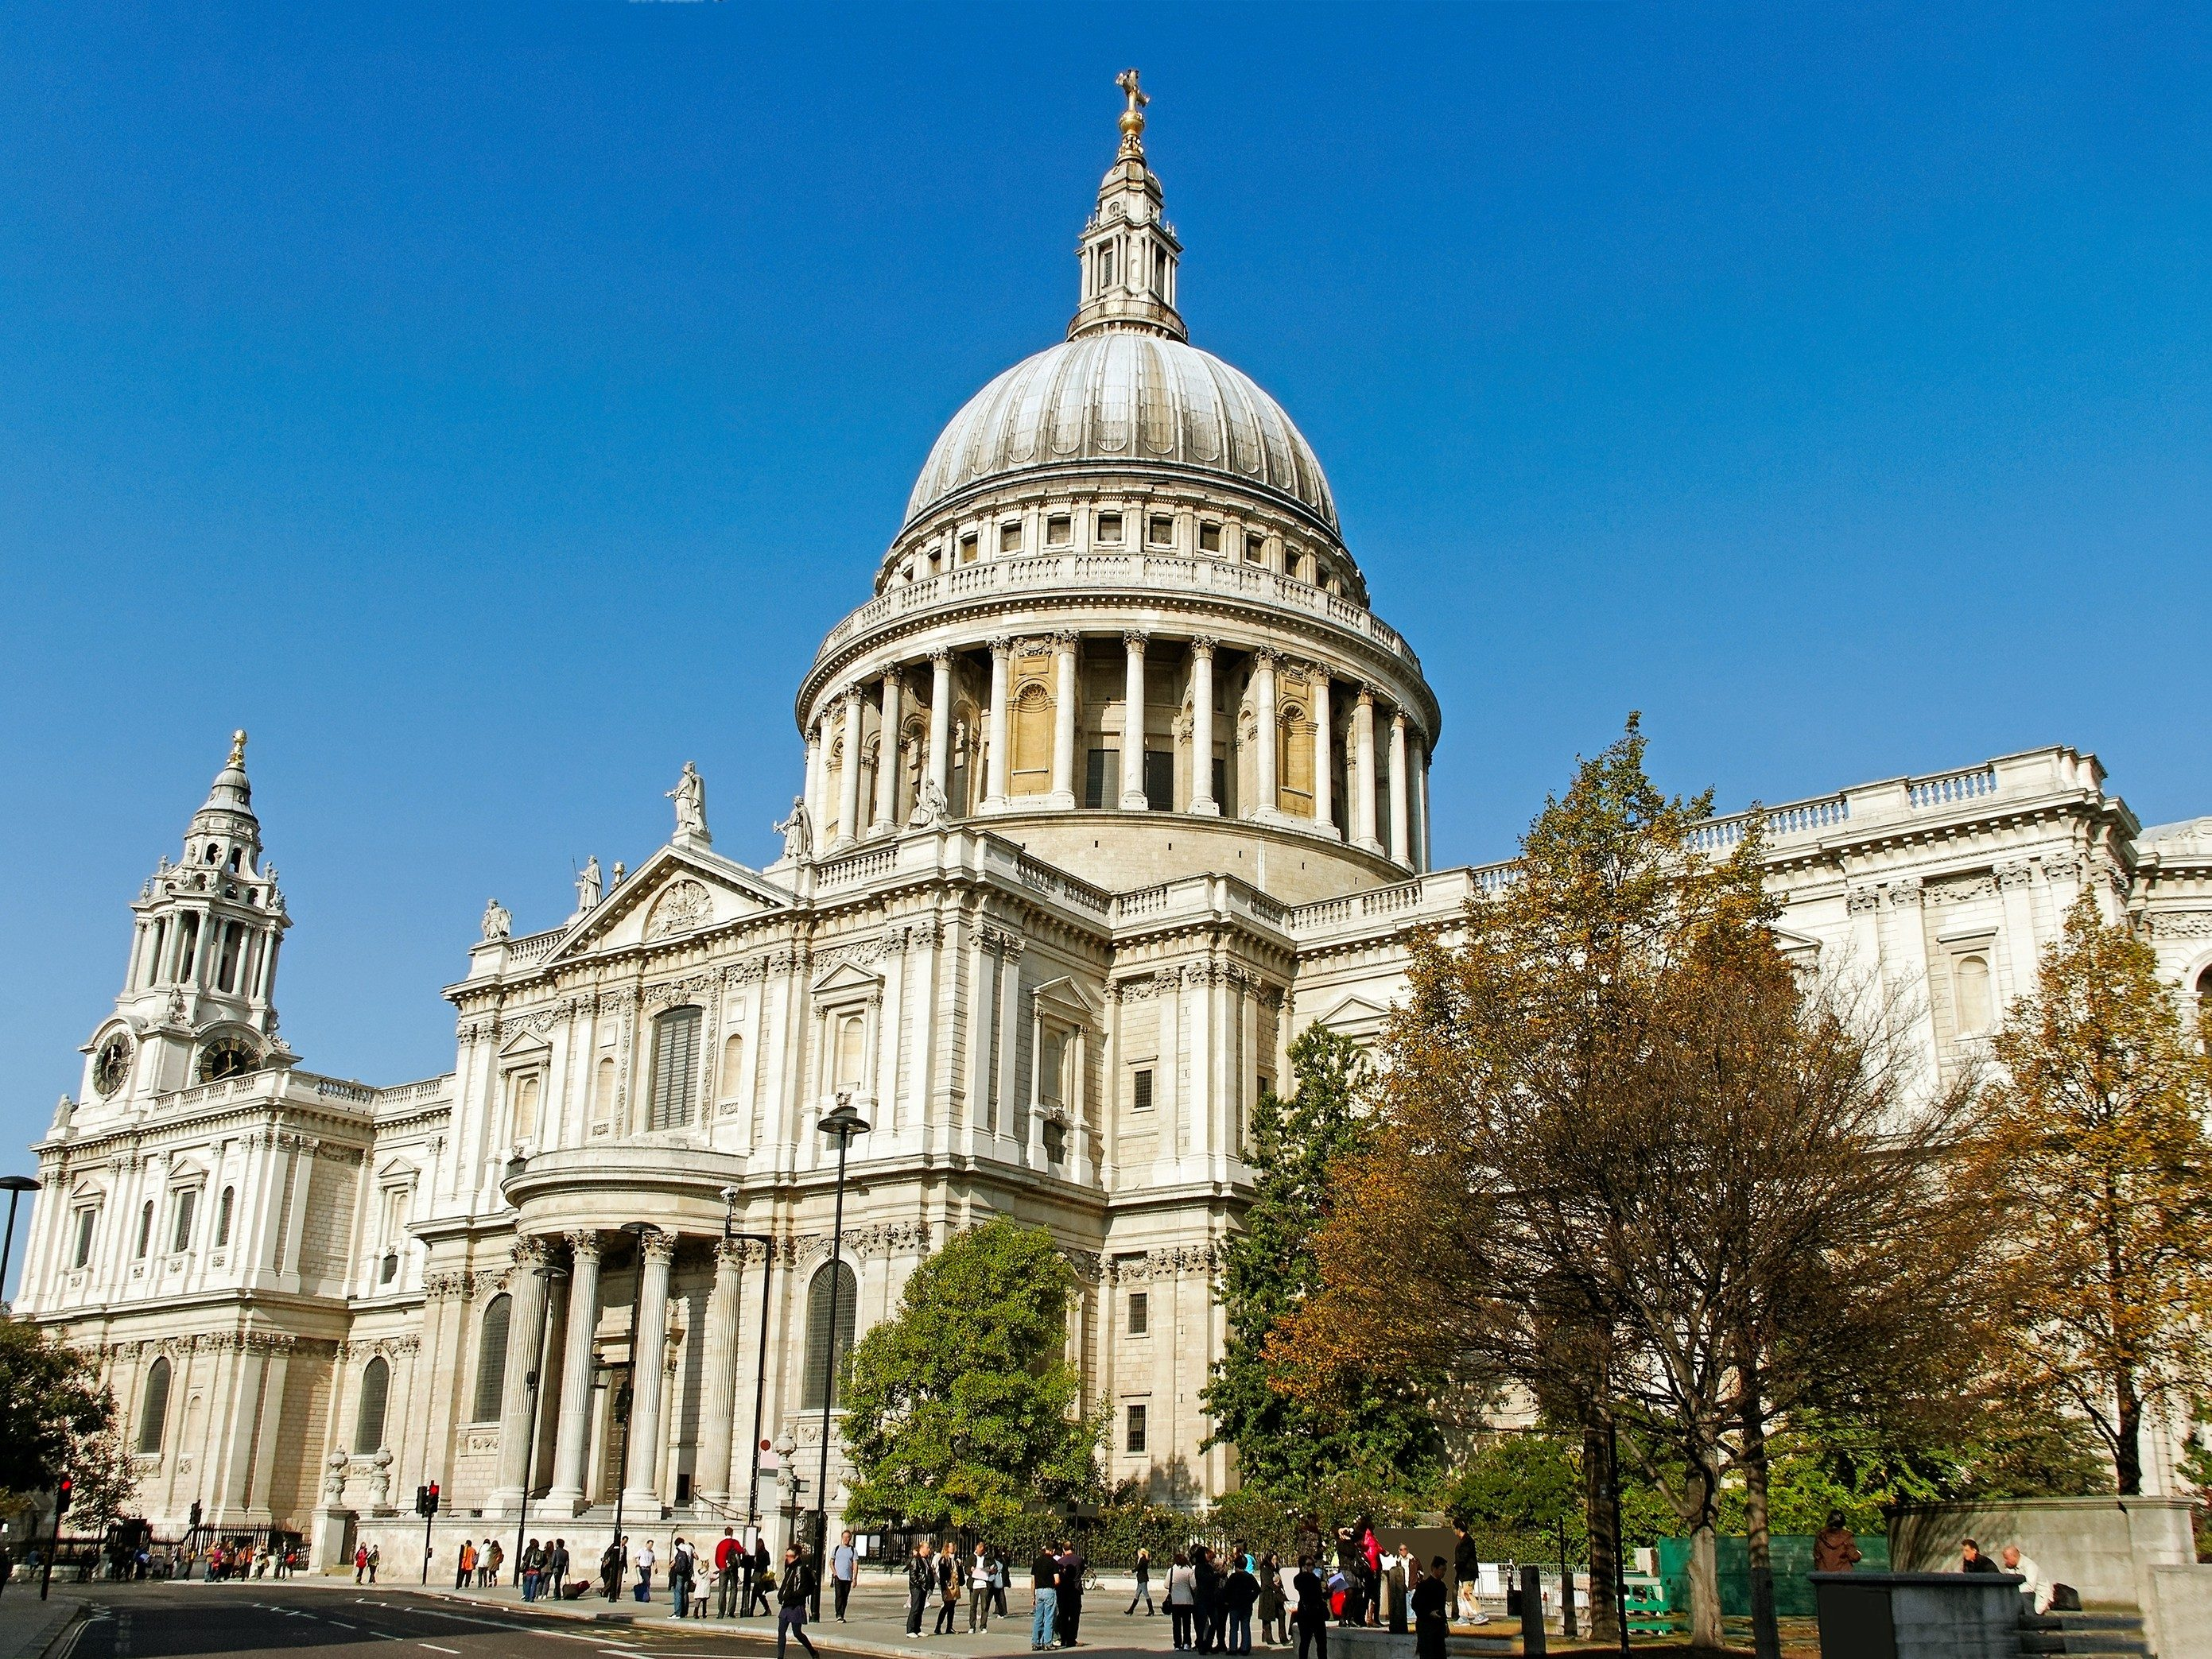 11. St. Paul's Cathedral